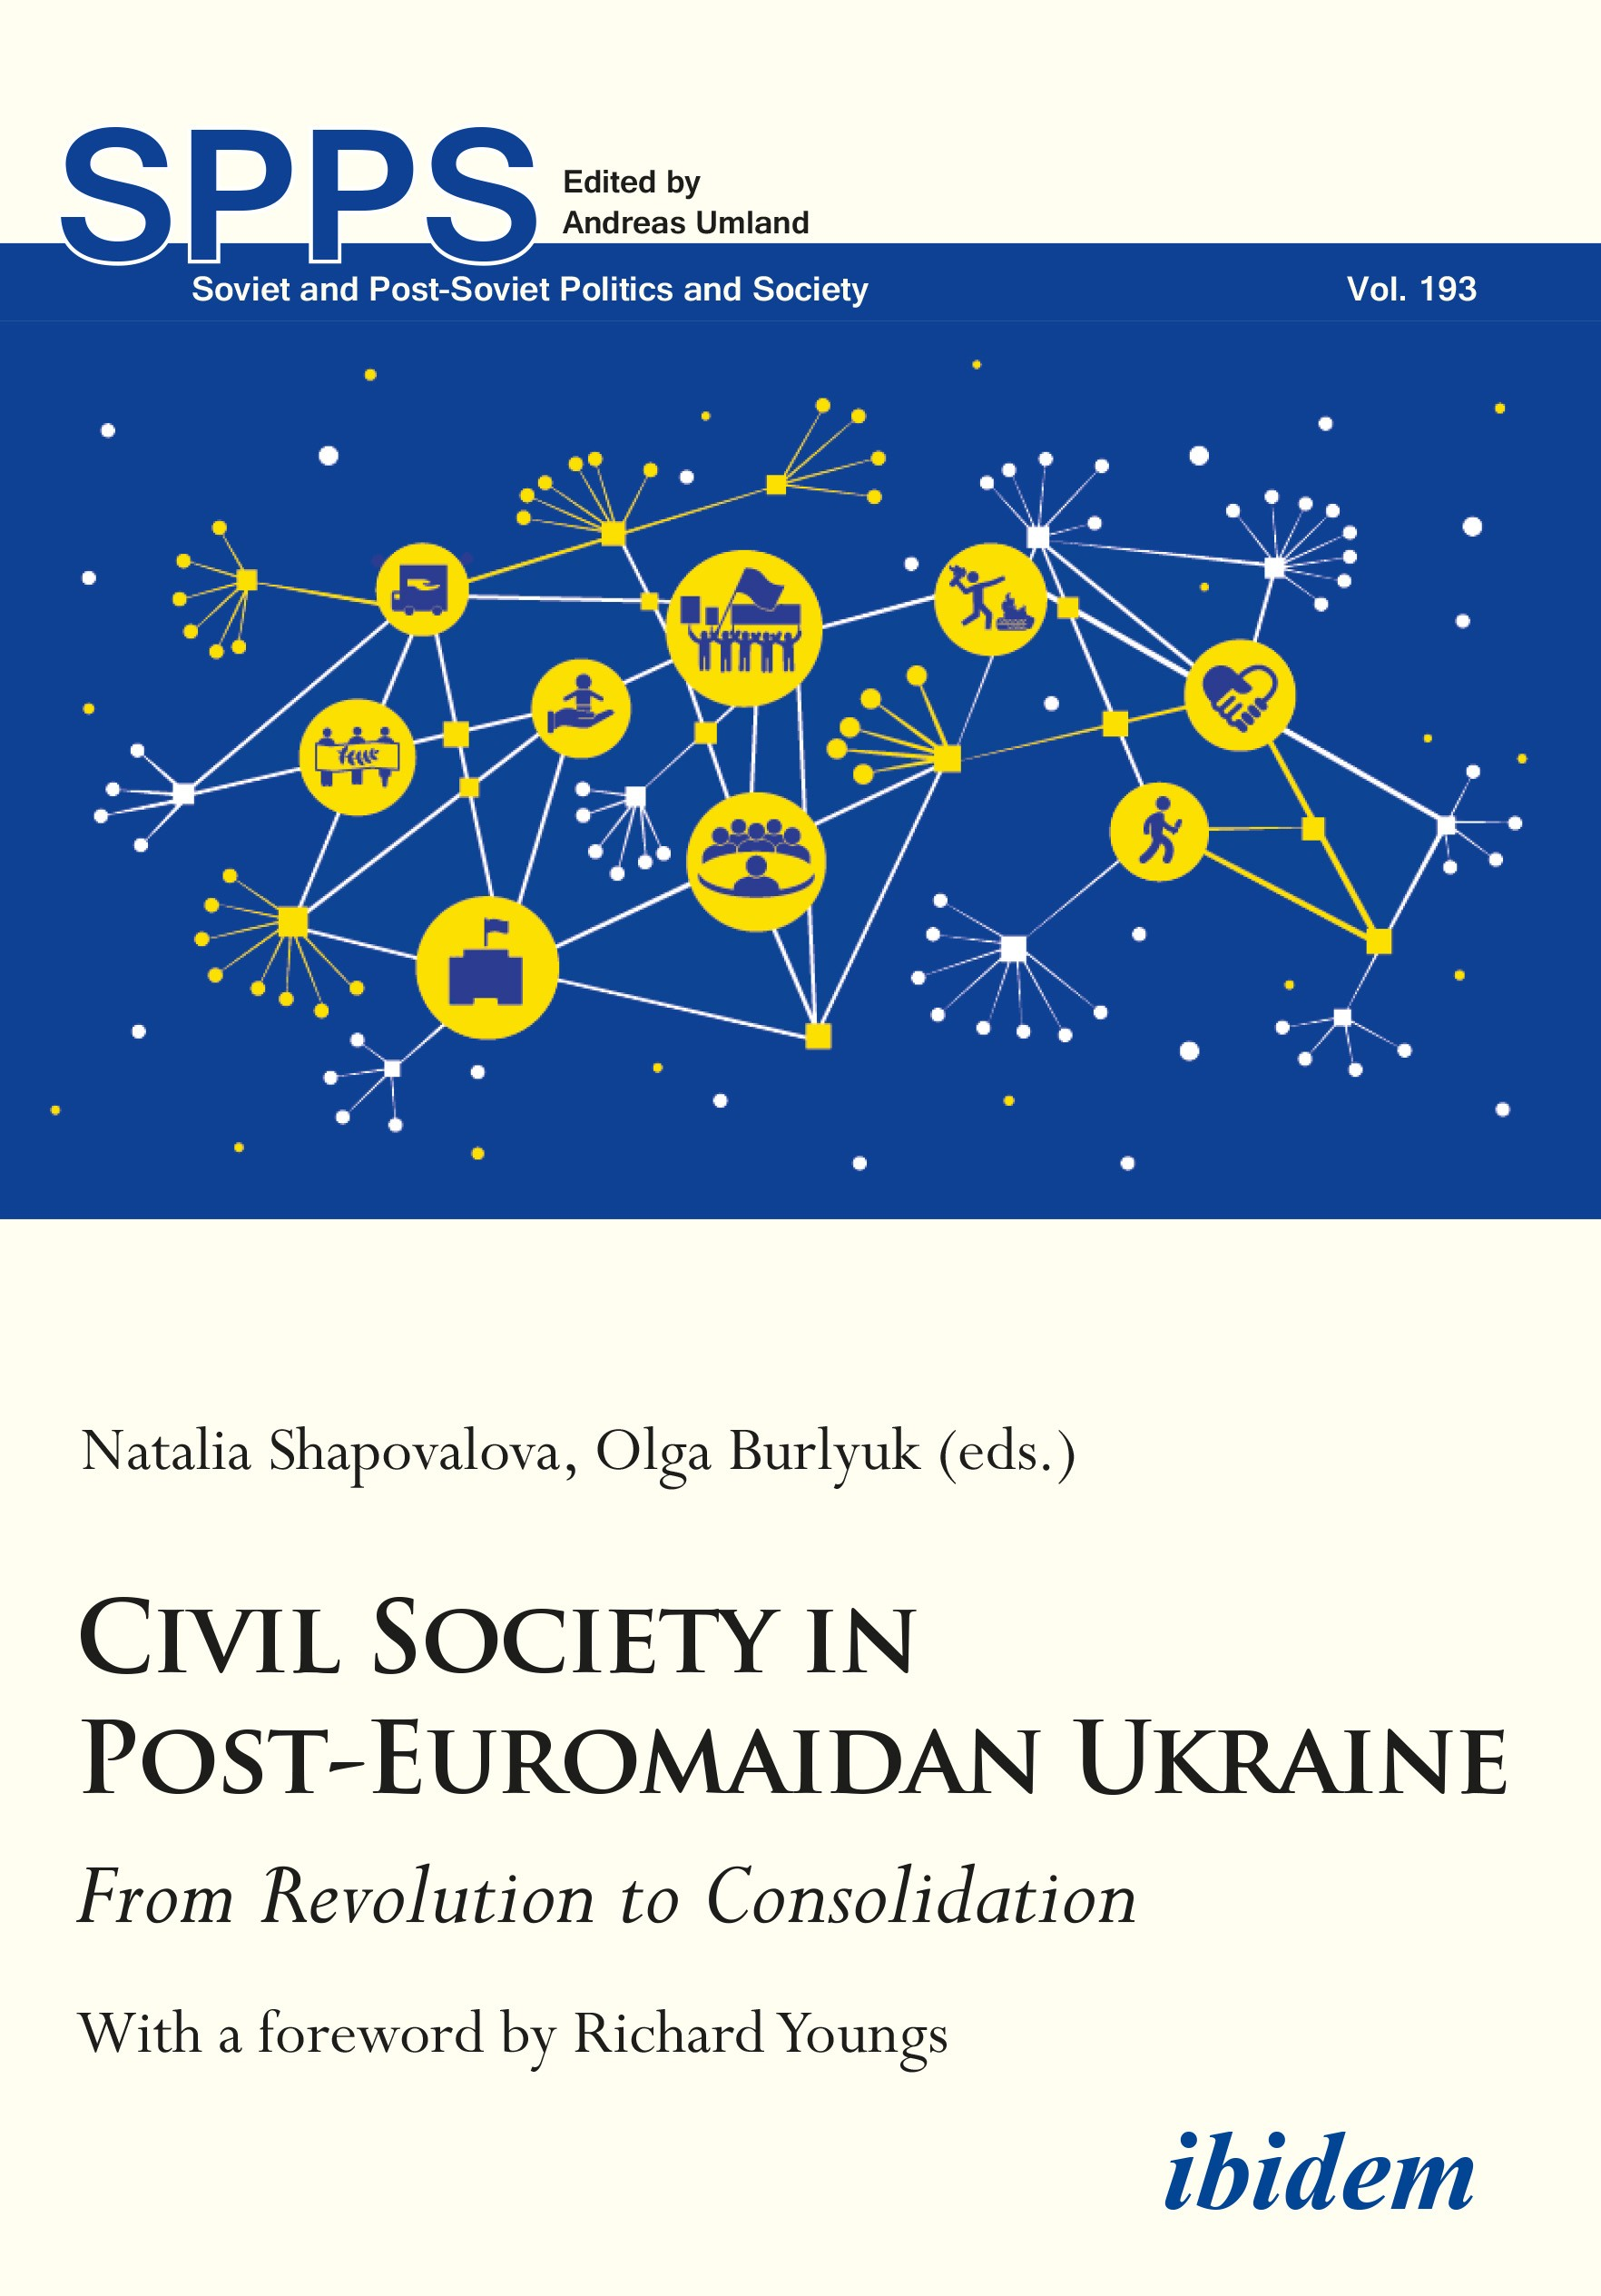 Civil Society in Post-Euromaidan Ukraine